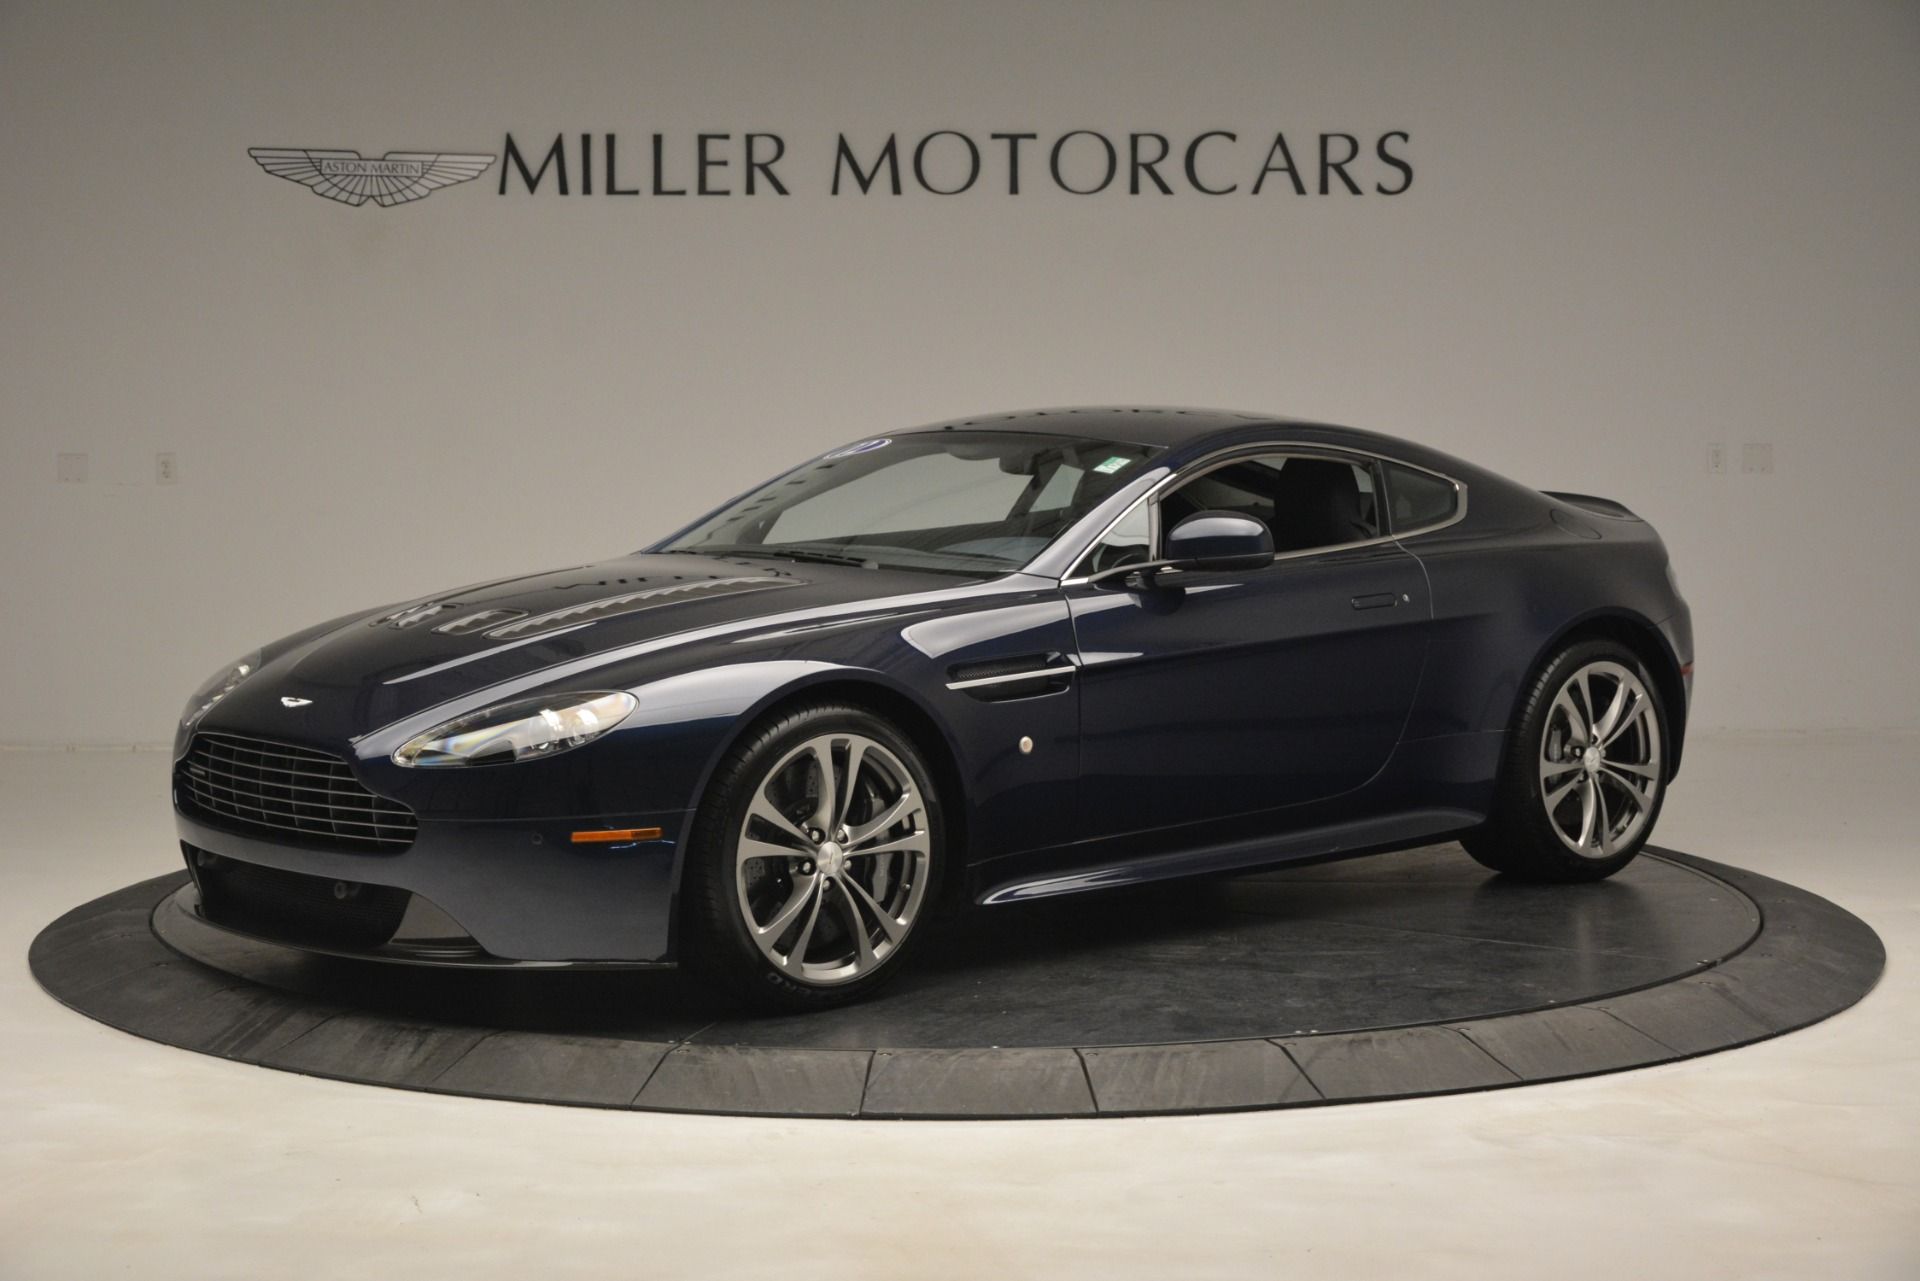 Used 2012 Aston Martin V12 Vantage  For Sale In Westport, CT 3046_p2